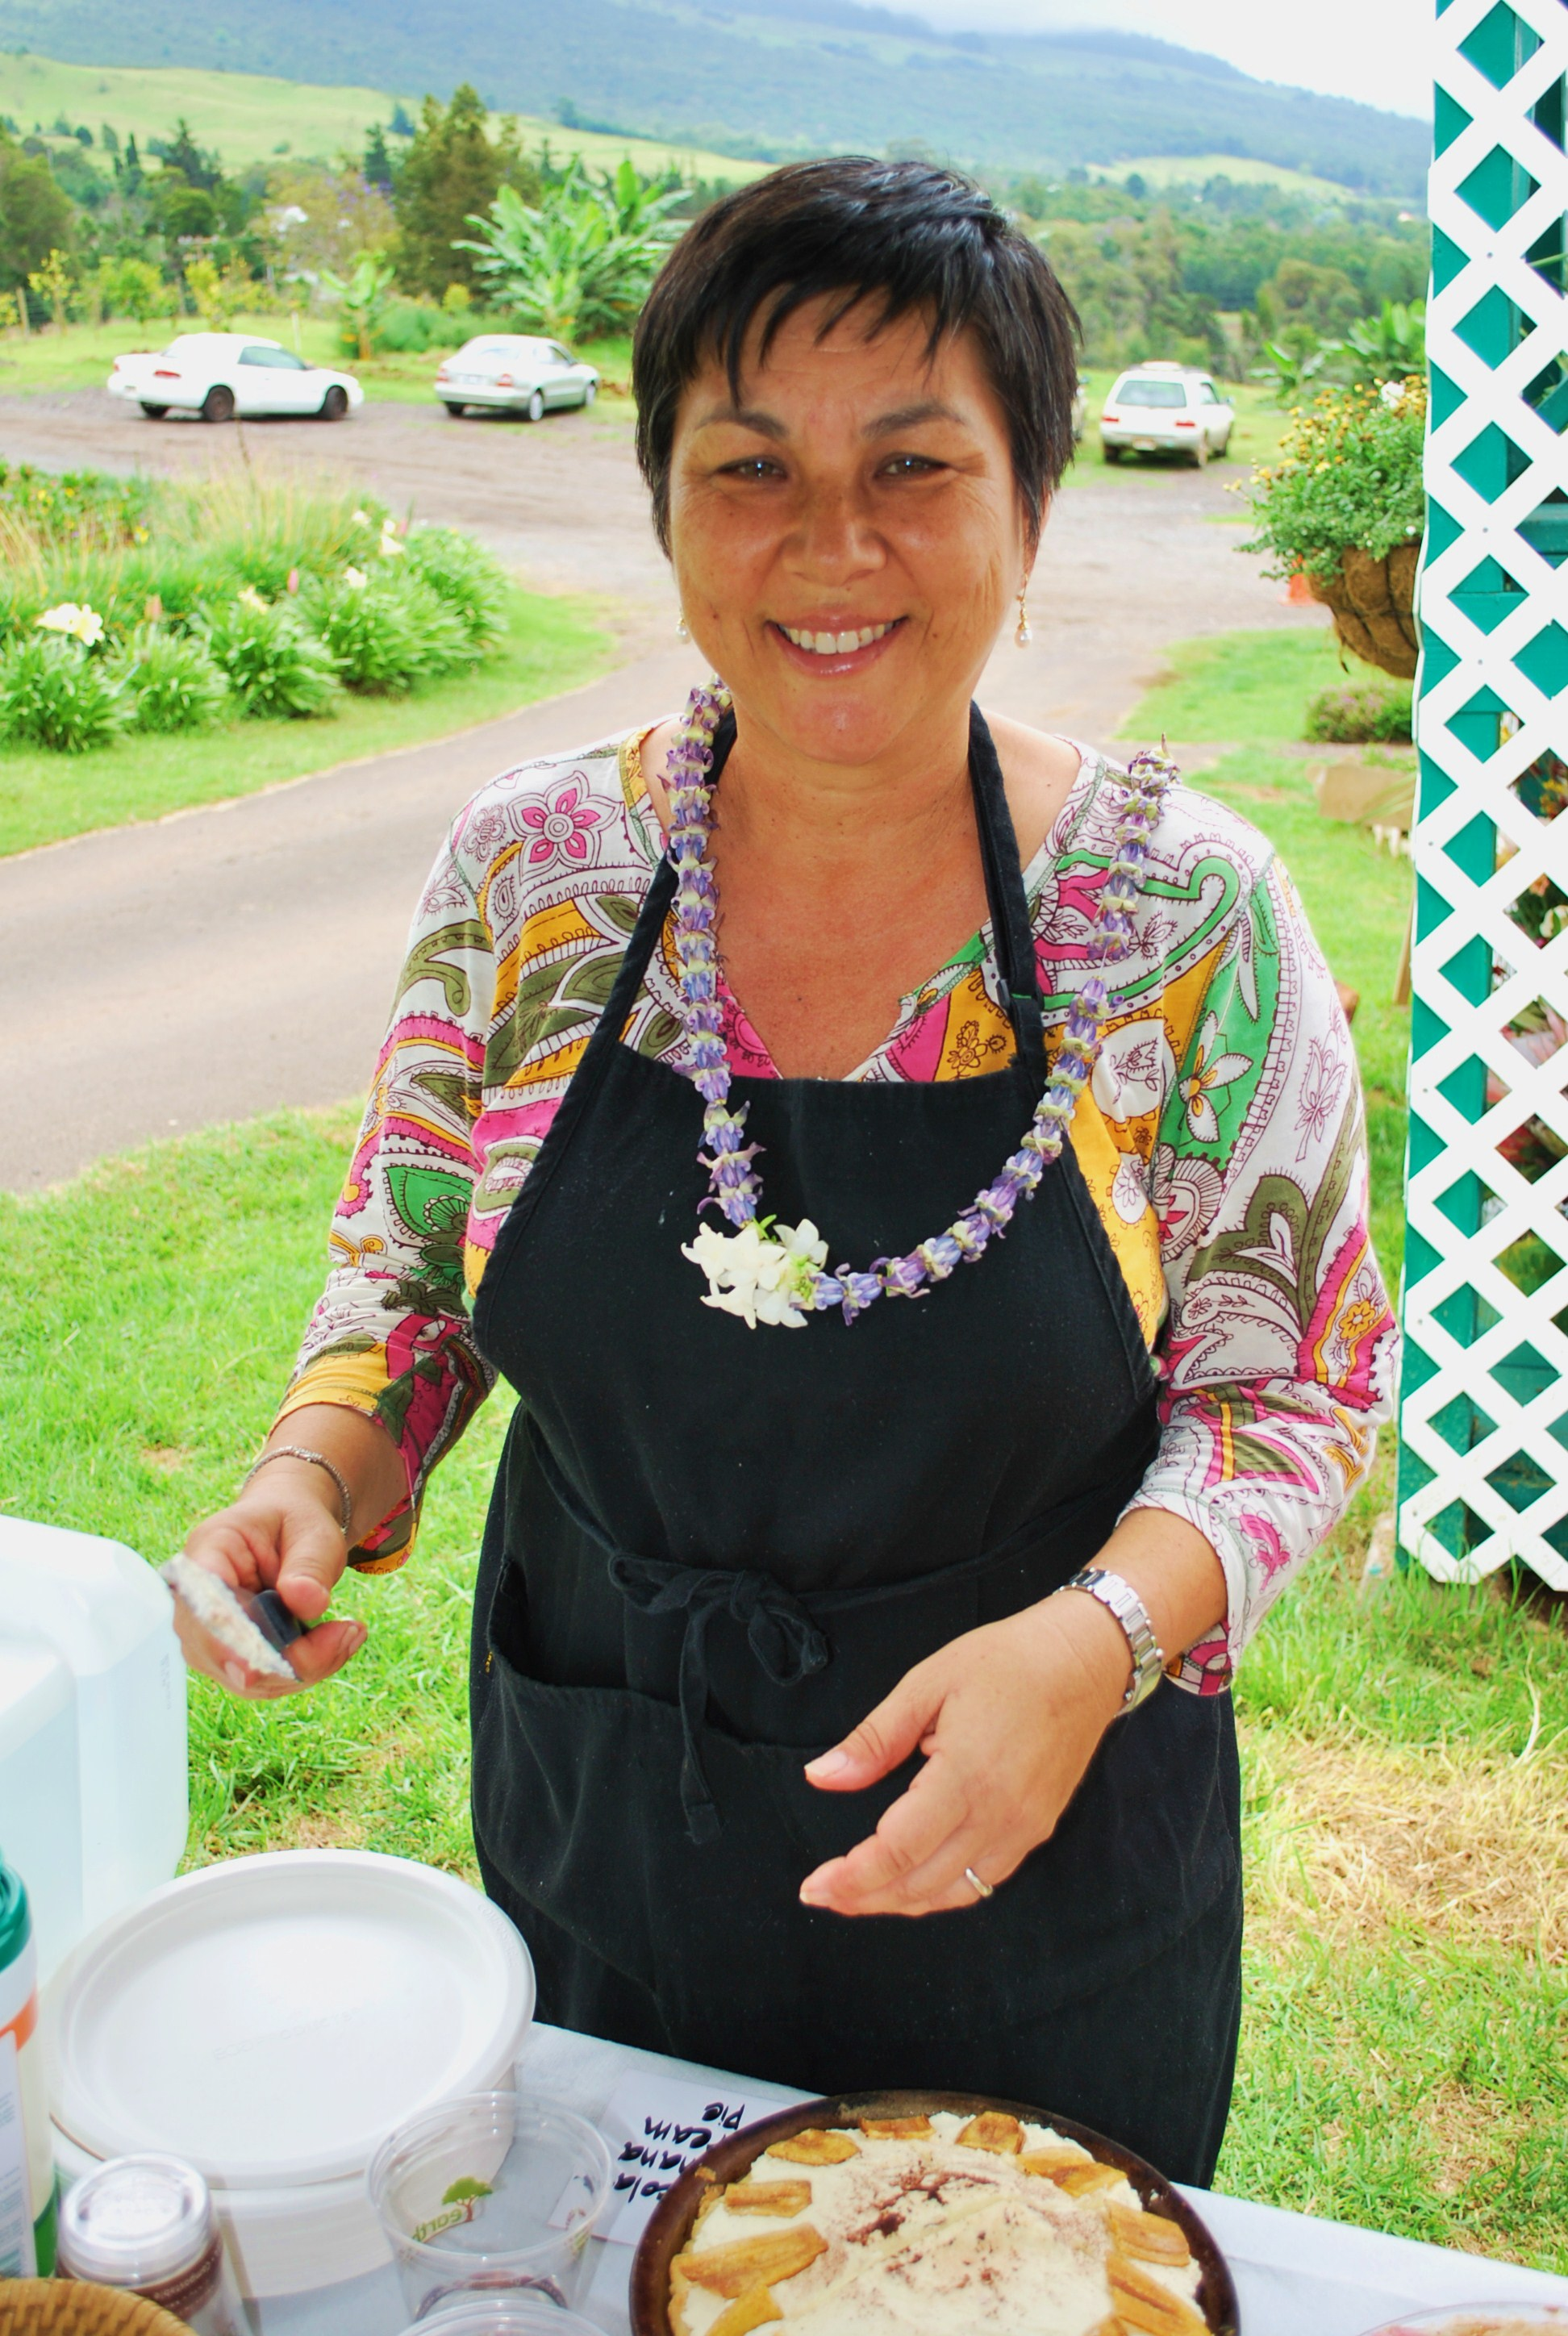 Dania Katz (advertising sales) of Edible Hawaiian Islands